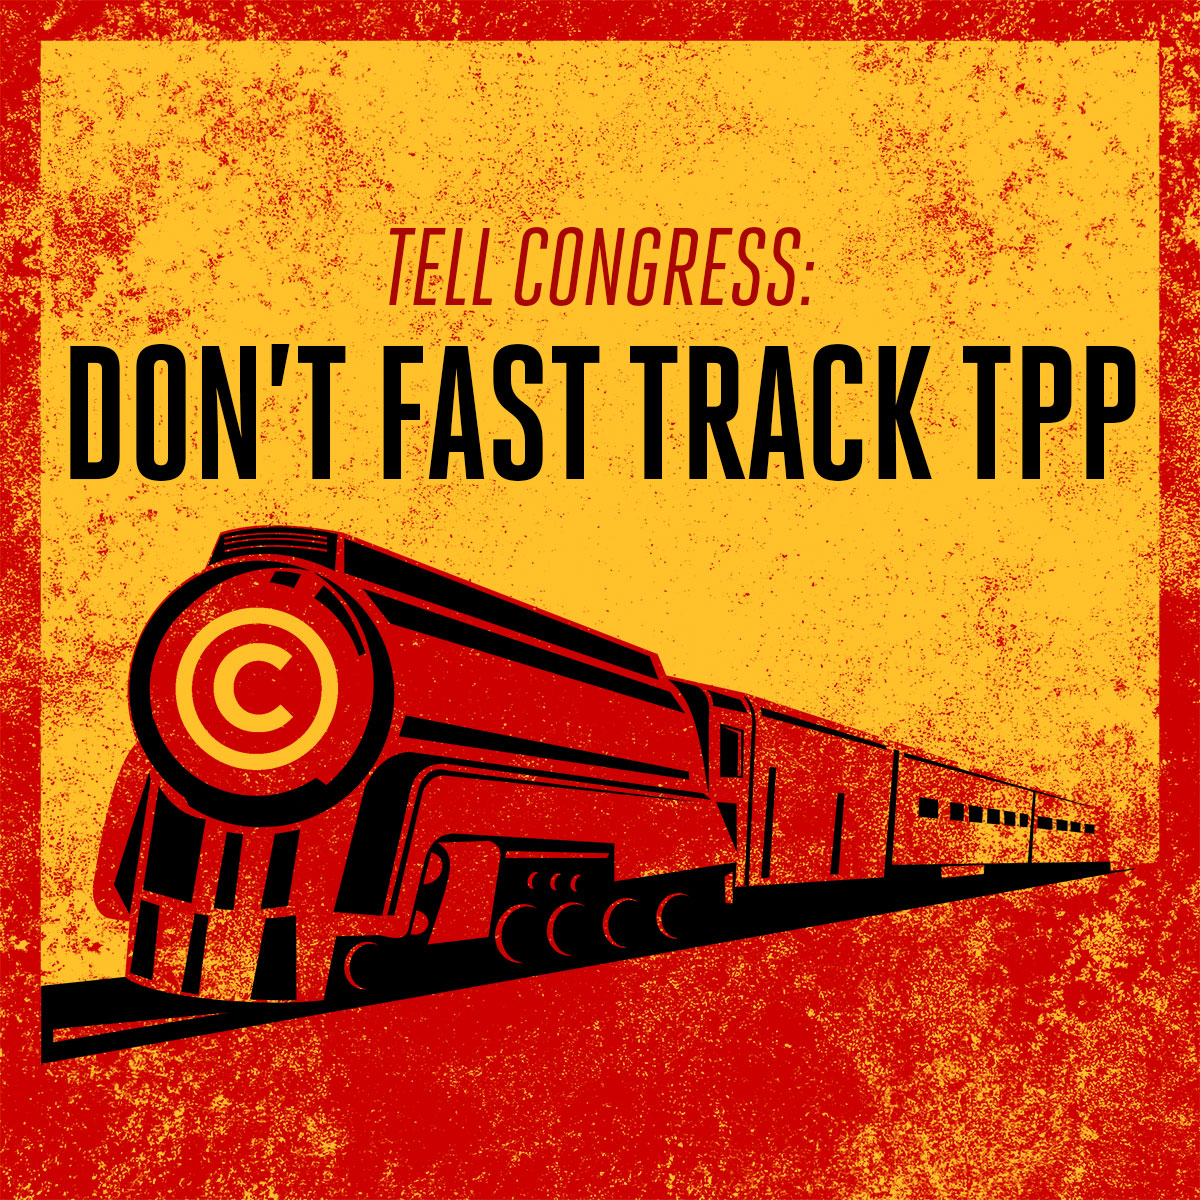 Fast Track Amendments Are Too Little Too Late To Salvage The Tpp